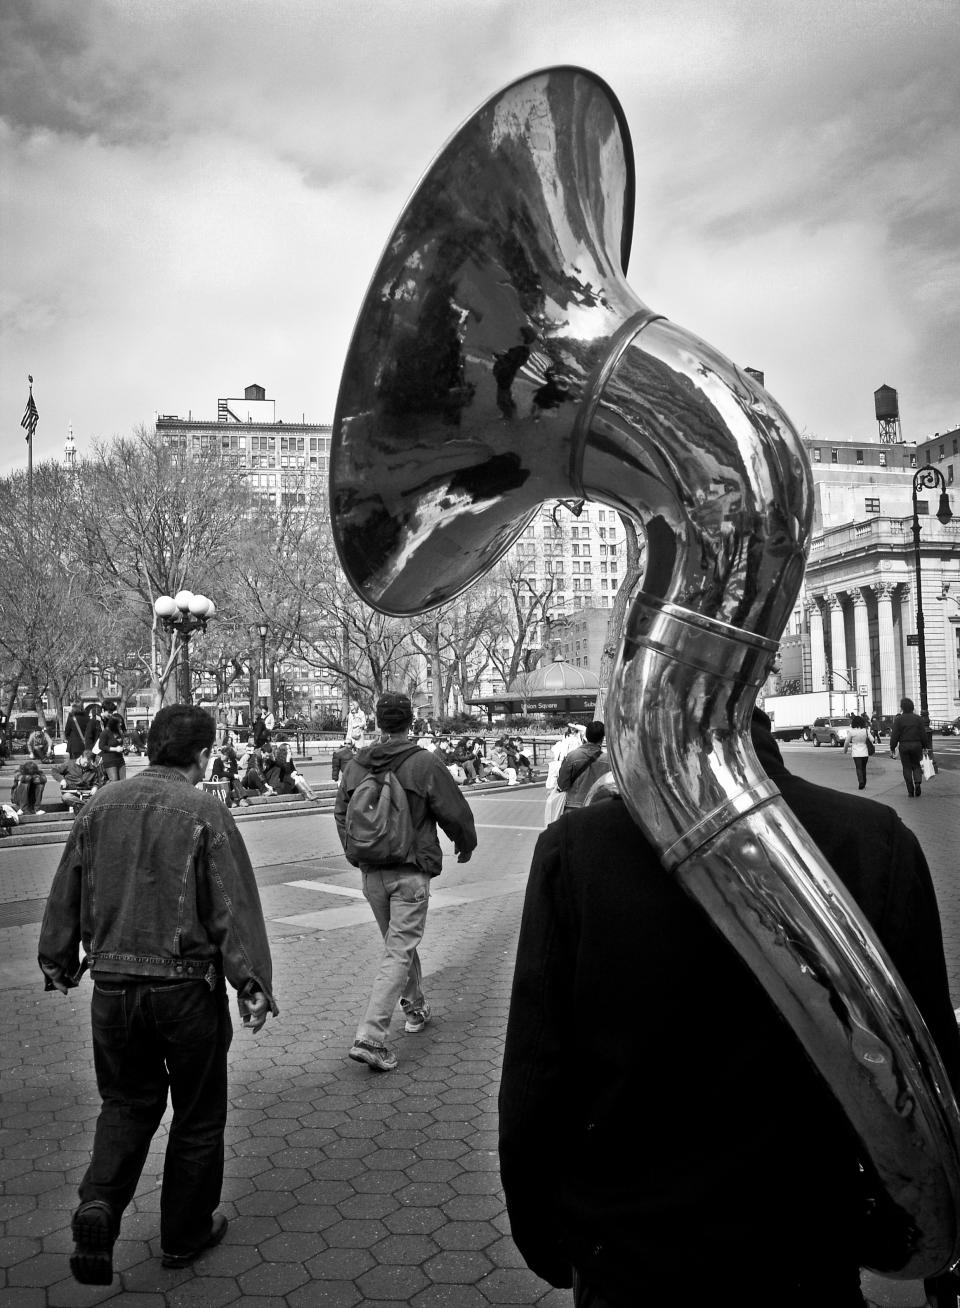 tuba horn instrument music band cobblestone pedestrians walking lamp posts buildlings backpack